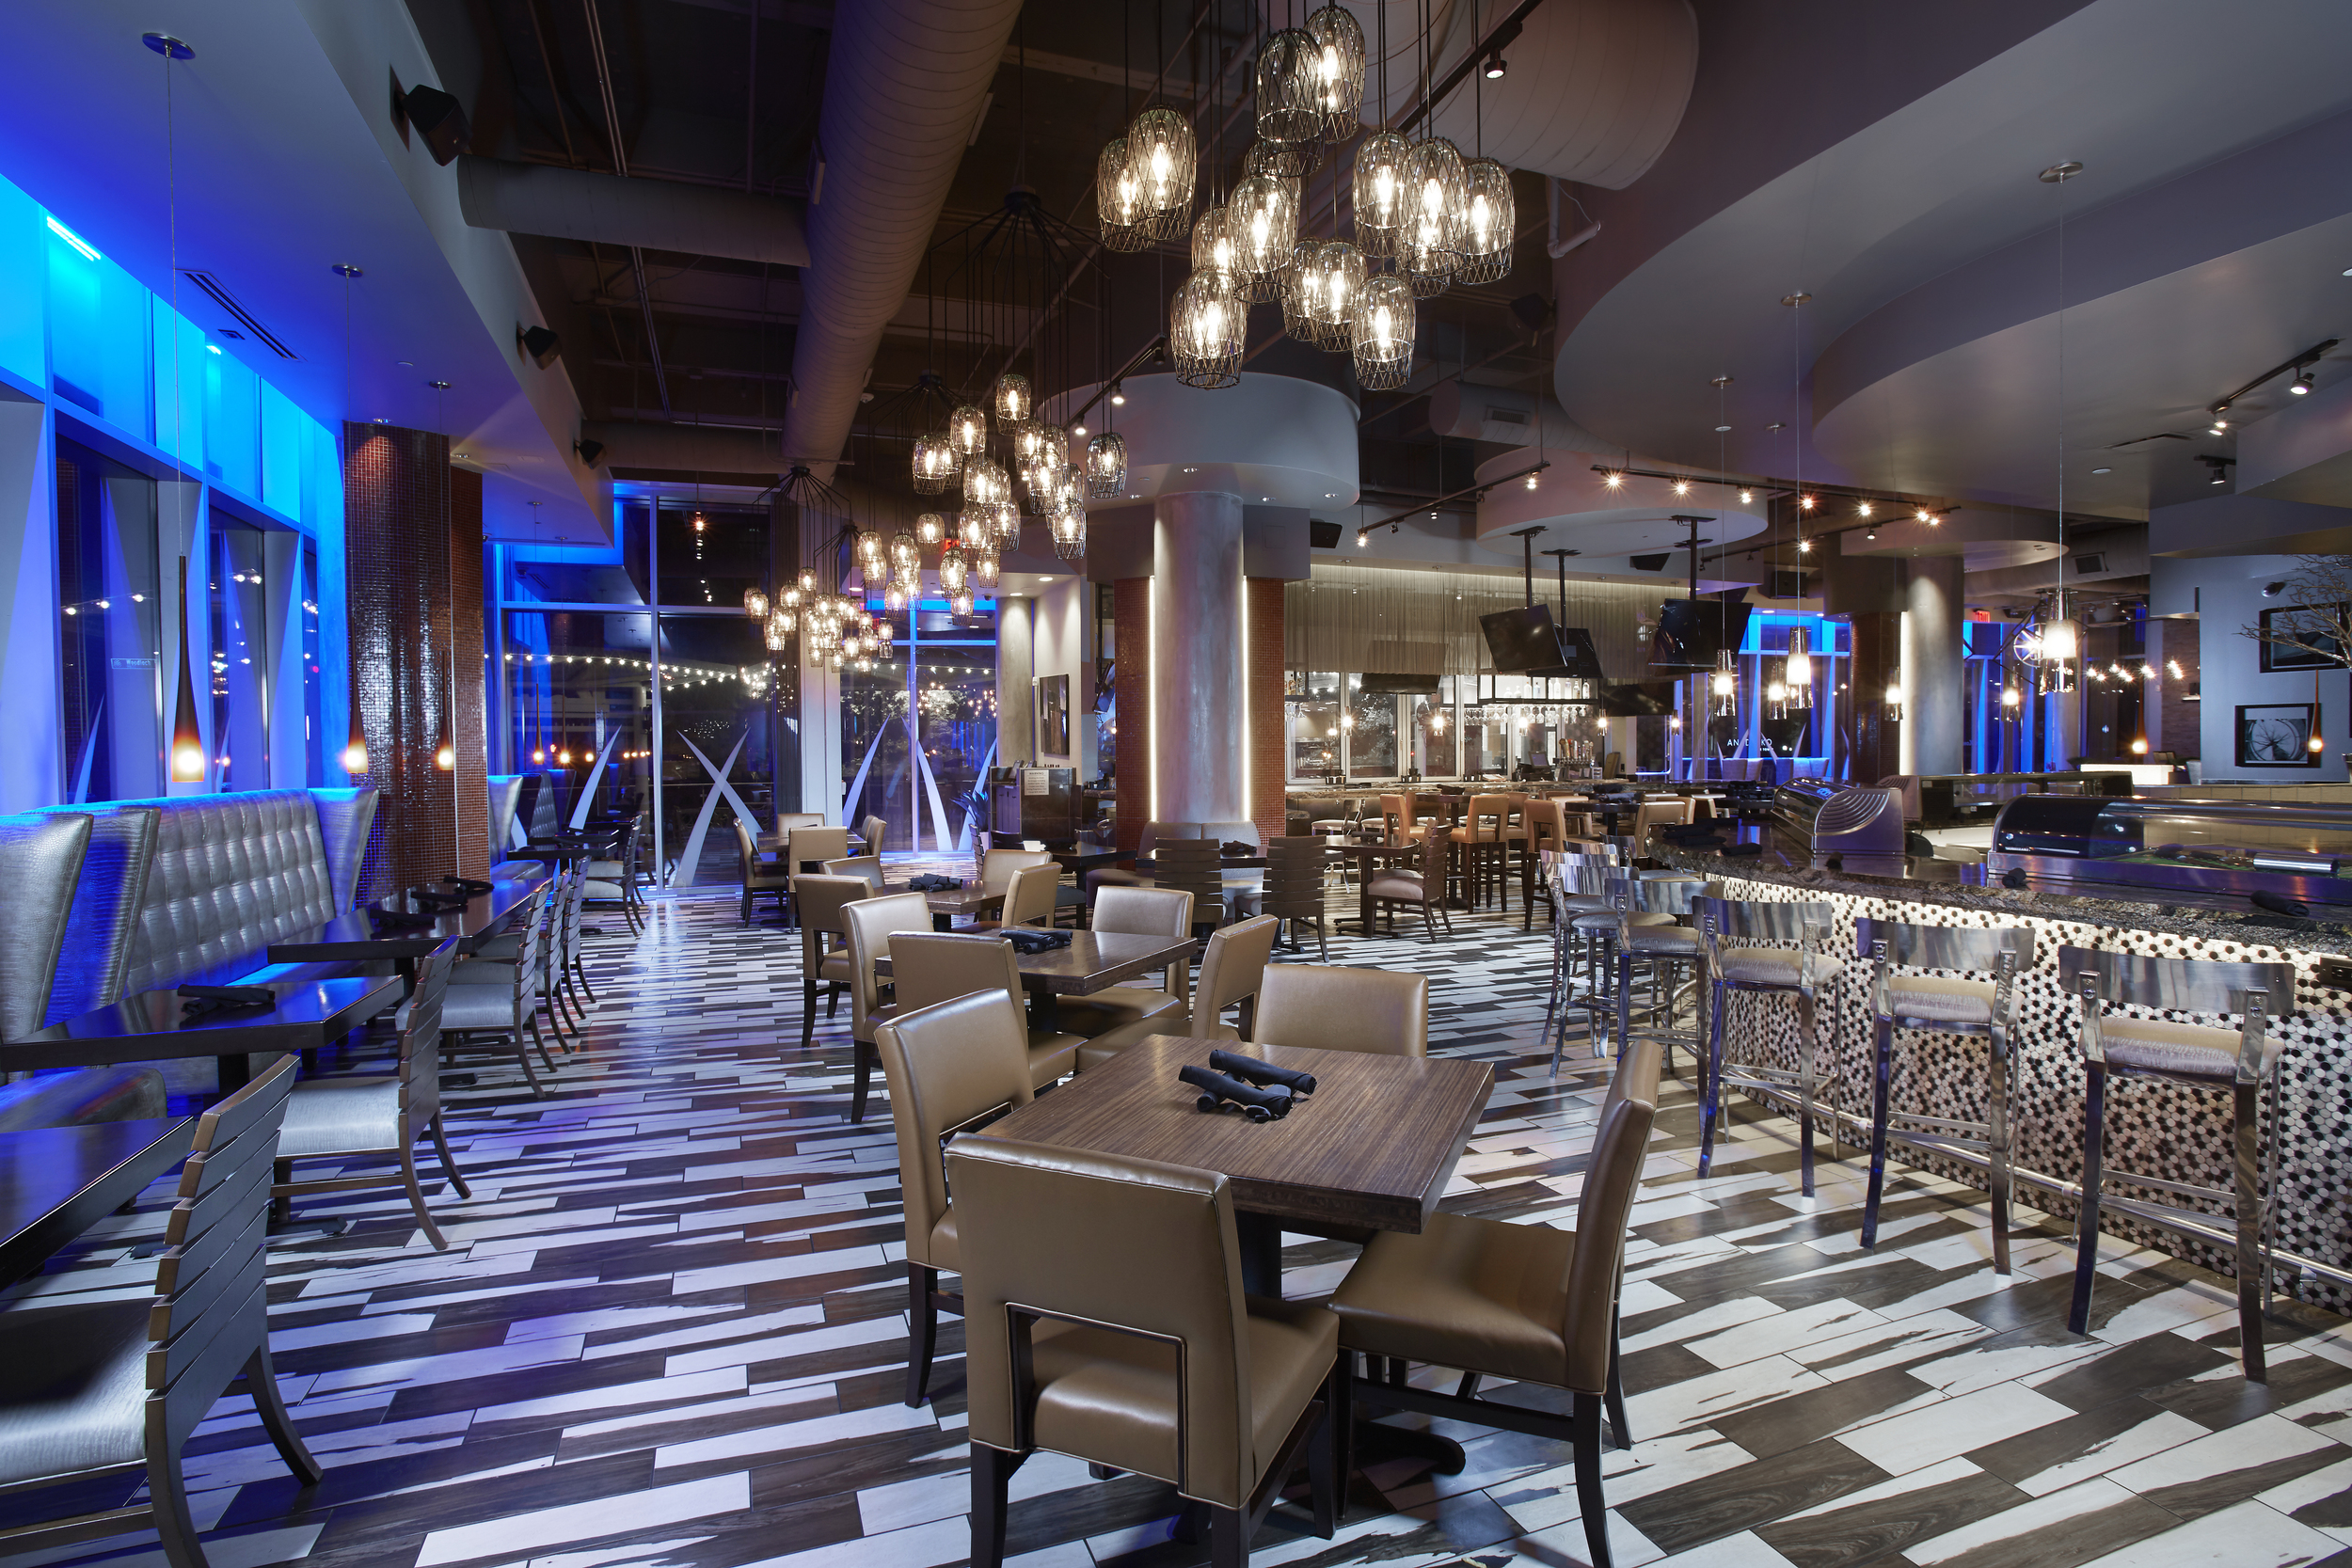 aperture architectural images _ kona grill 1